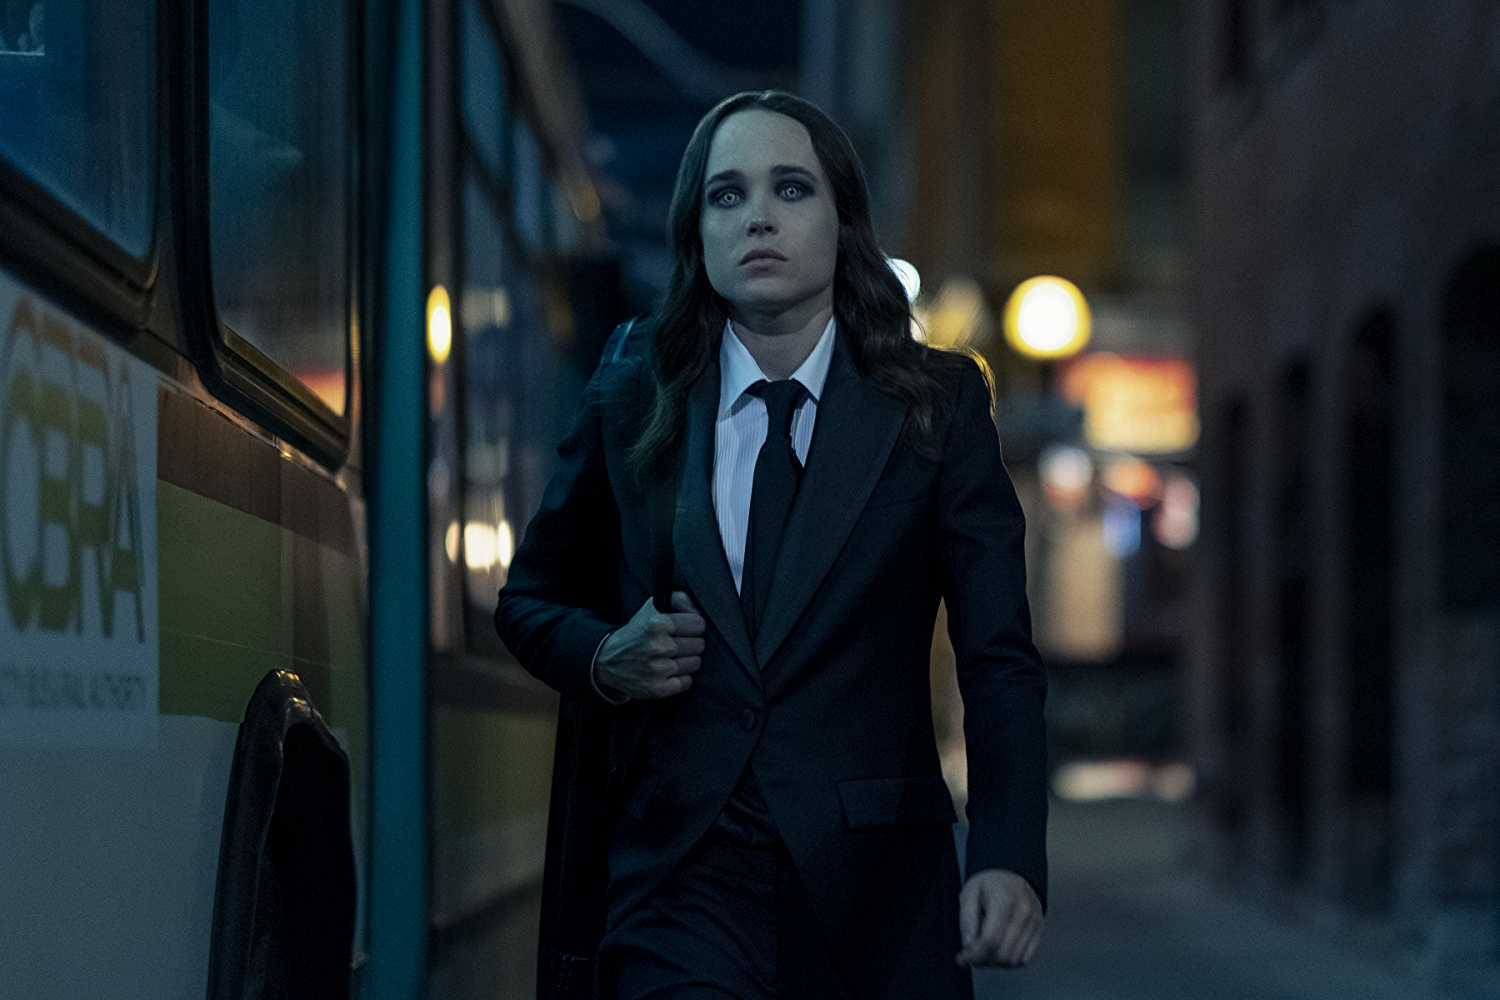 Ellen Page as Vanya Hargreeves aka The White Violin in Netflix's 'The Umbrella Academy'. (Source: IMDB)